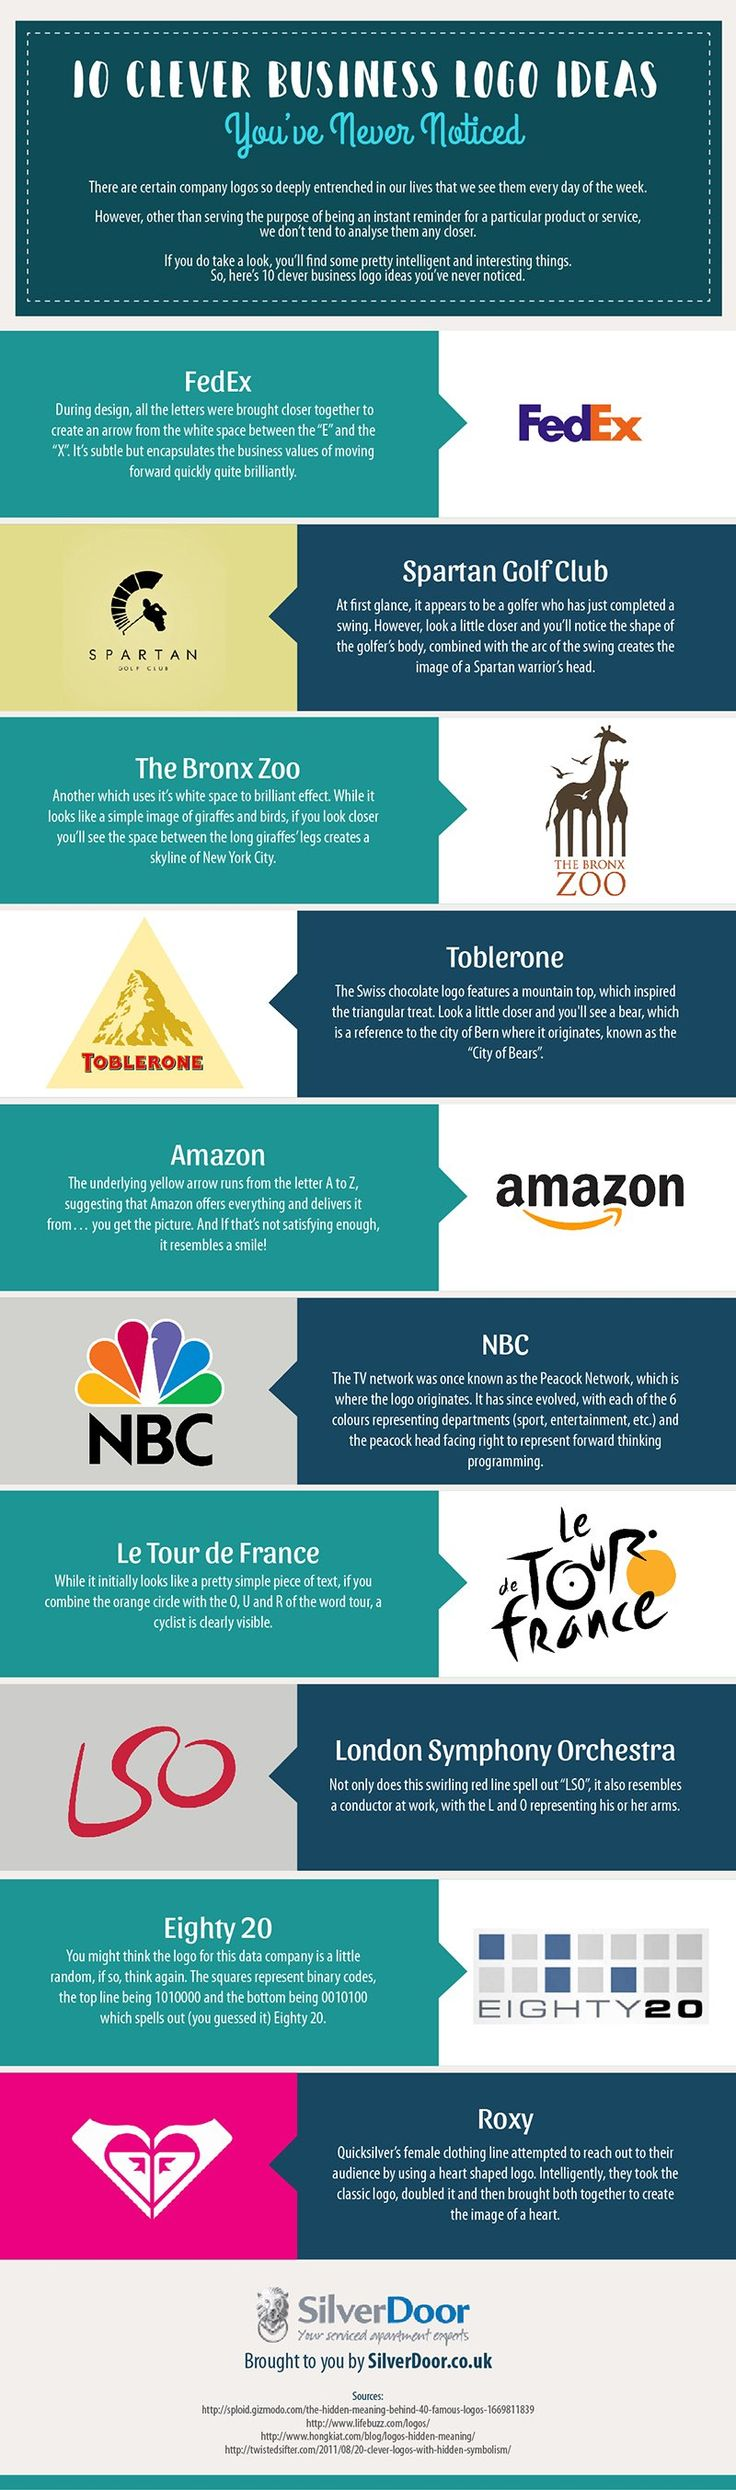 21 best Business images on Pinterest | Infographic, Infographics and ...